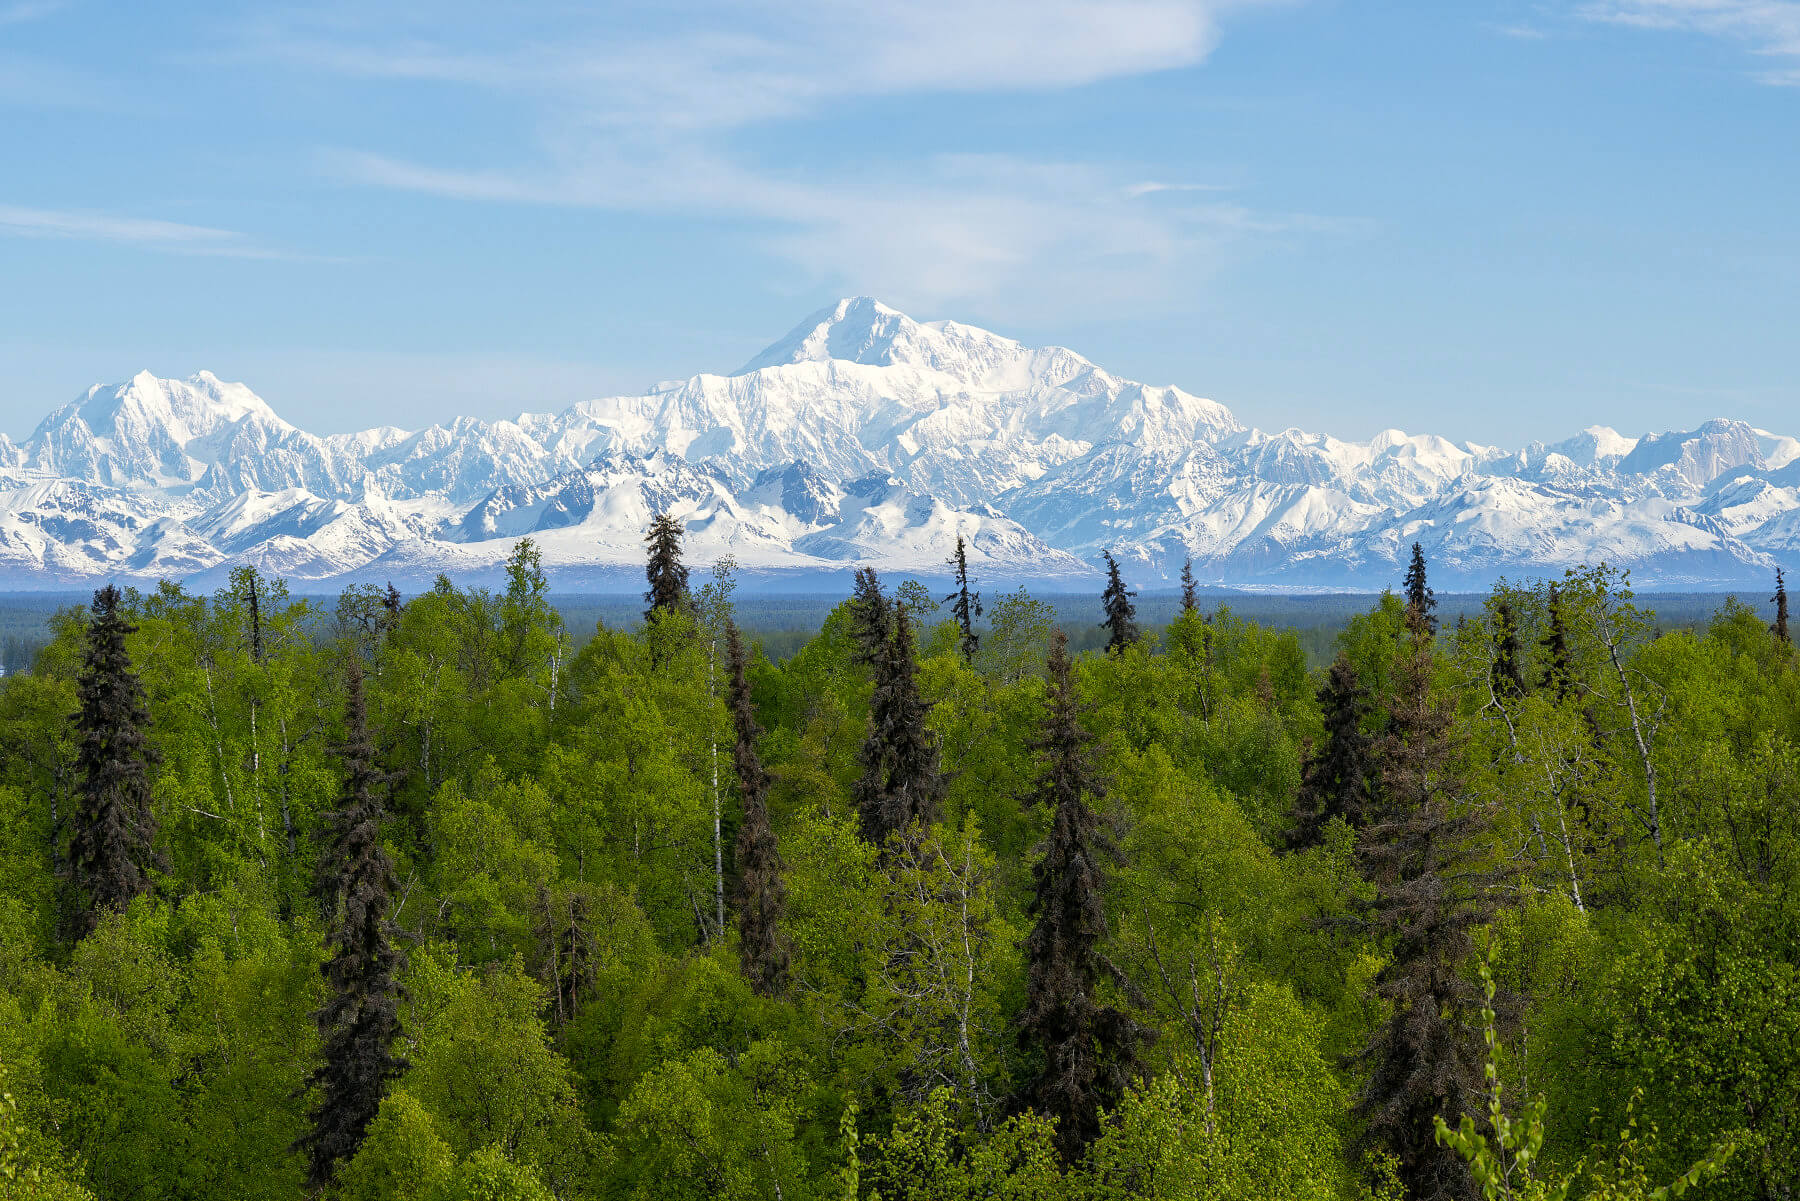 Alaska: The Vacation Everyone Should Take at Least Once